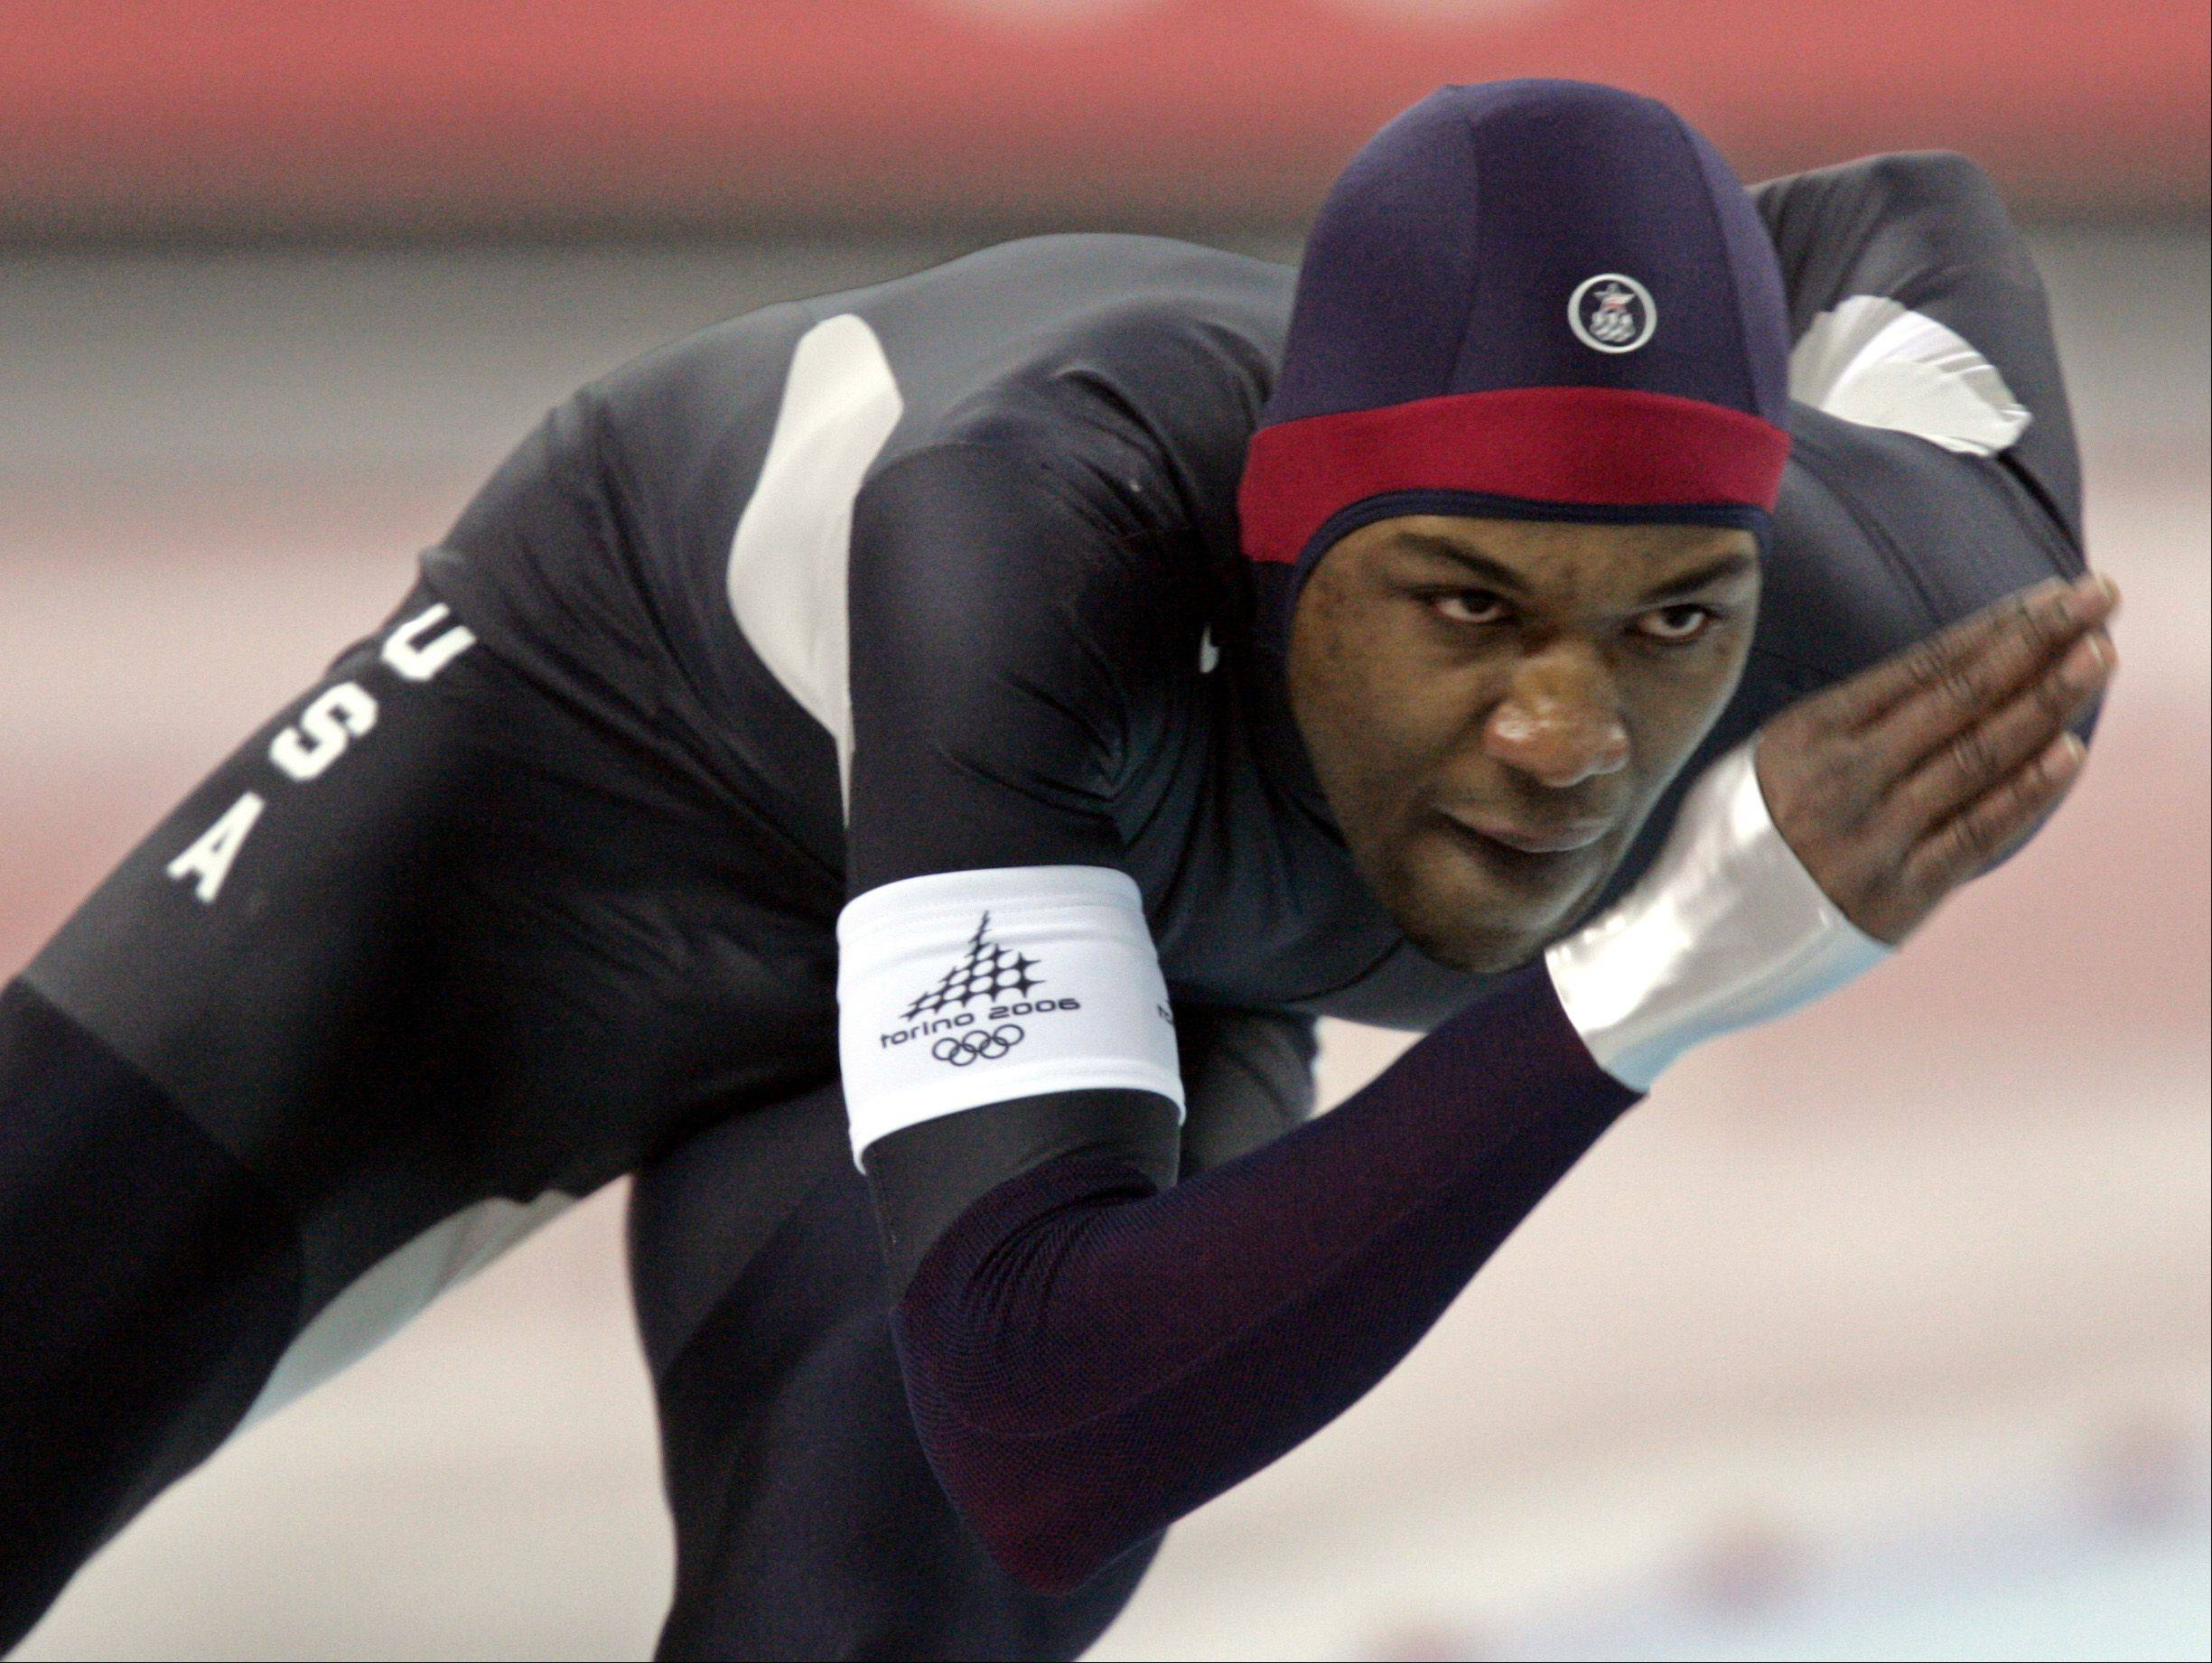 Chicagoan Shani Davis, shown here competing in the 2006 Winter Olympics, will also be on the U.S. Speedskating team during the 2014 Winter Olympics in Sochi.